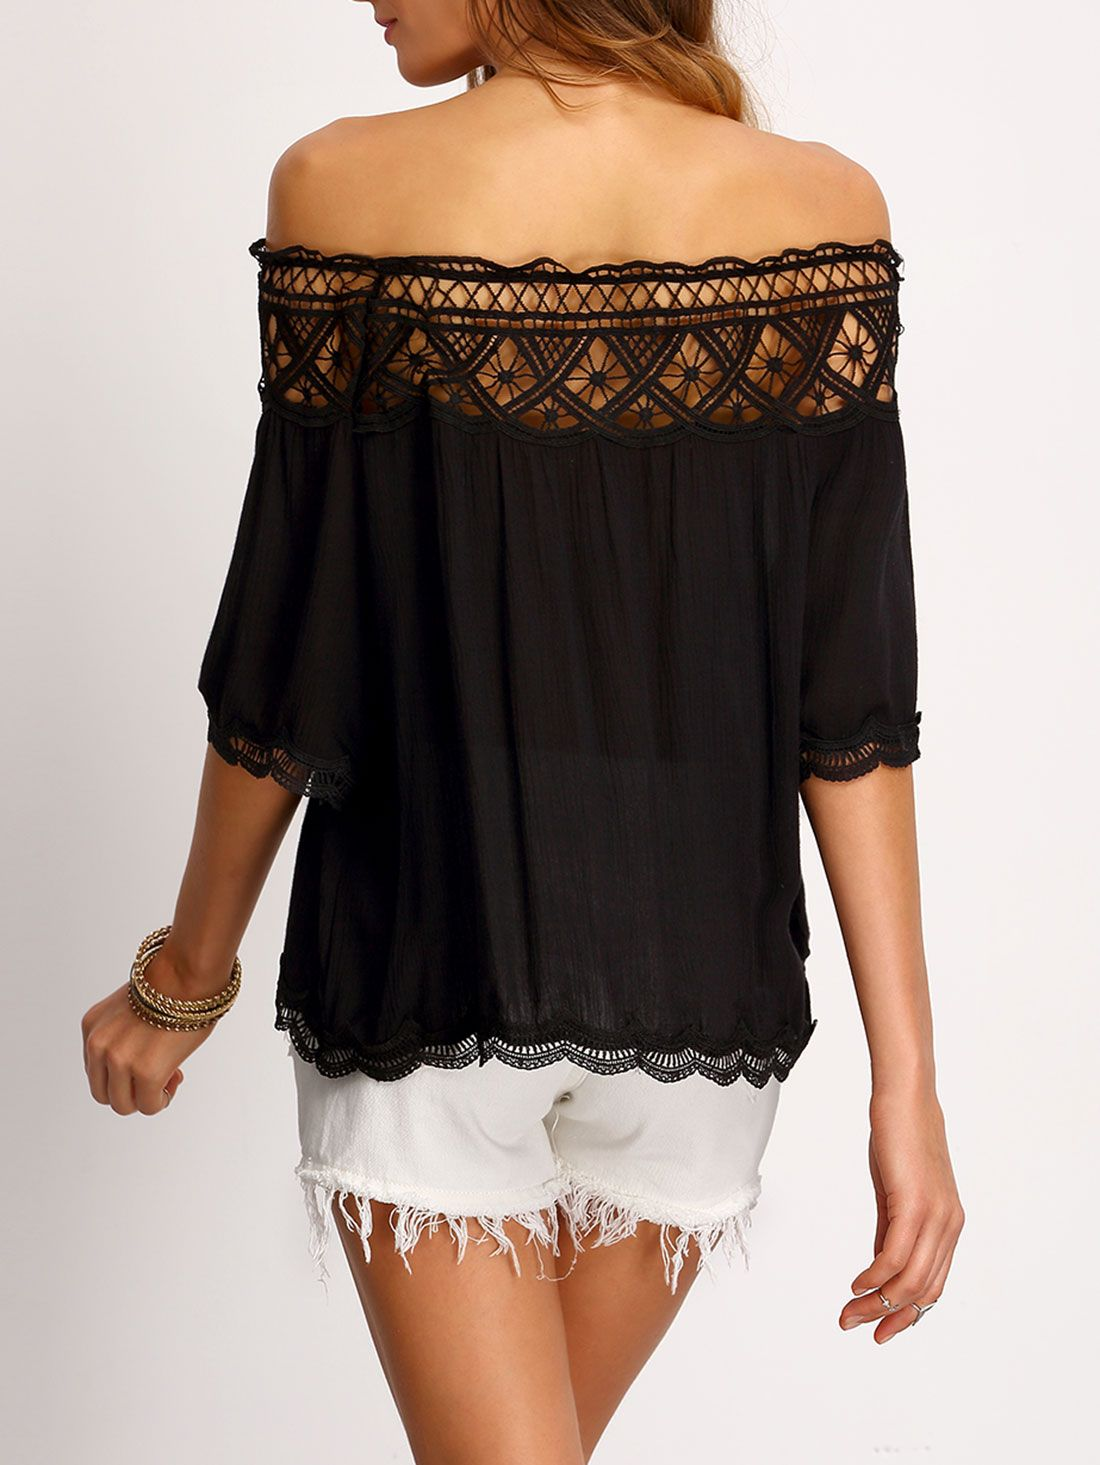 76d2525994 Shop Boat Neck Crochet Hollow Out Shirt online. SheIn offers Boat Neck  Crochet Hollow Out Shirt & more to fit your fashionable needs.